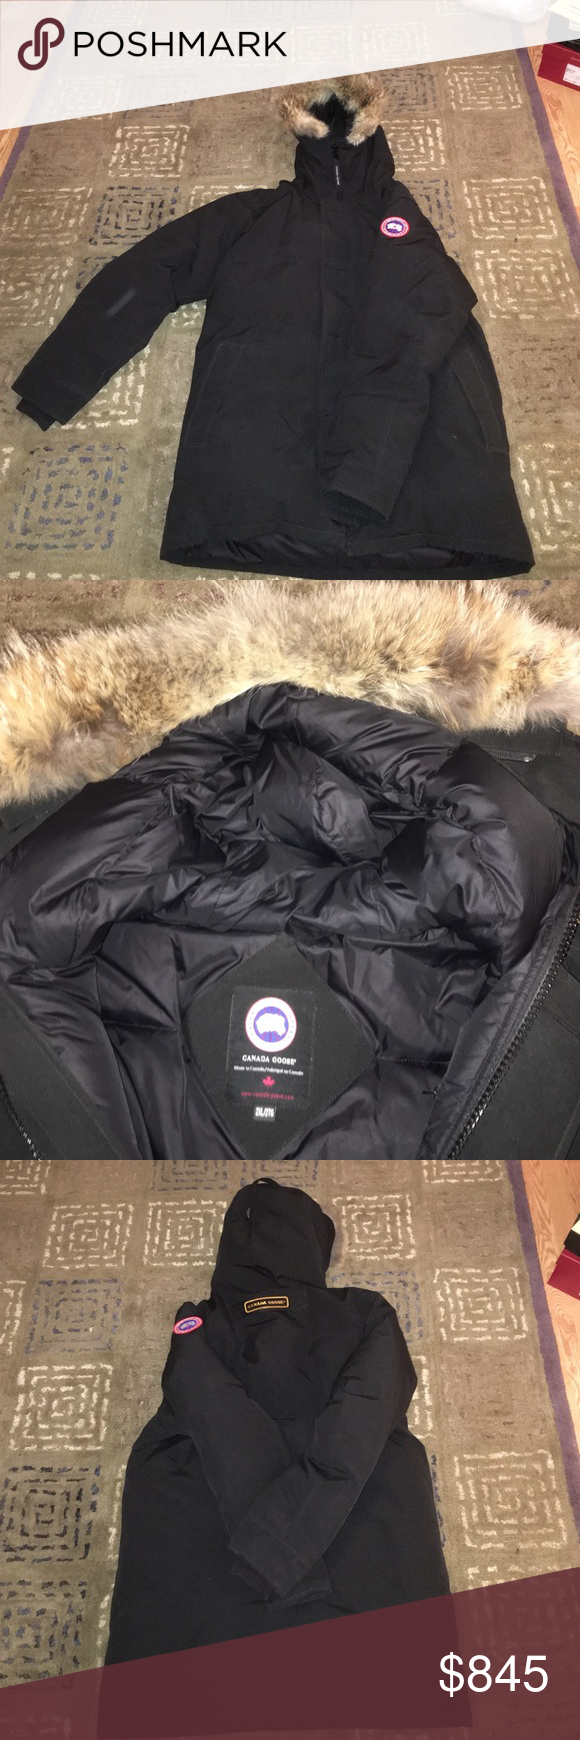 Canada Goose parka with Coyote fur hood 100 % authentic mens parka, model type: 00015172, this parka is in Amazing condition, no stains, no rips, ...